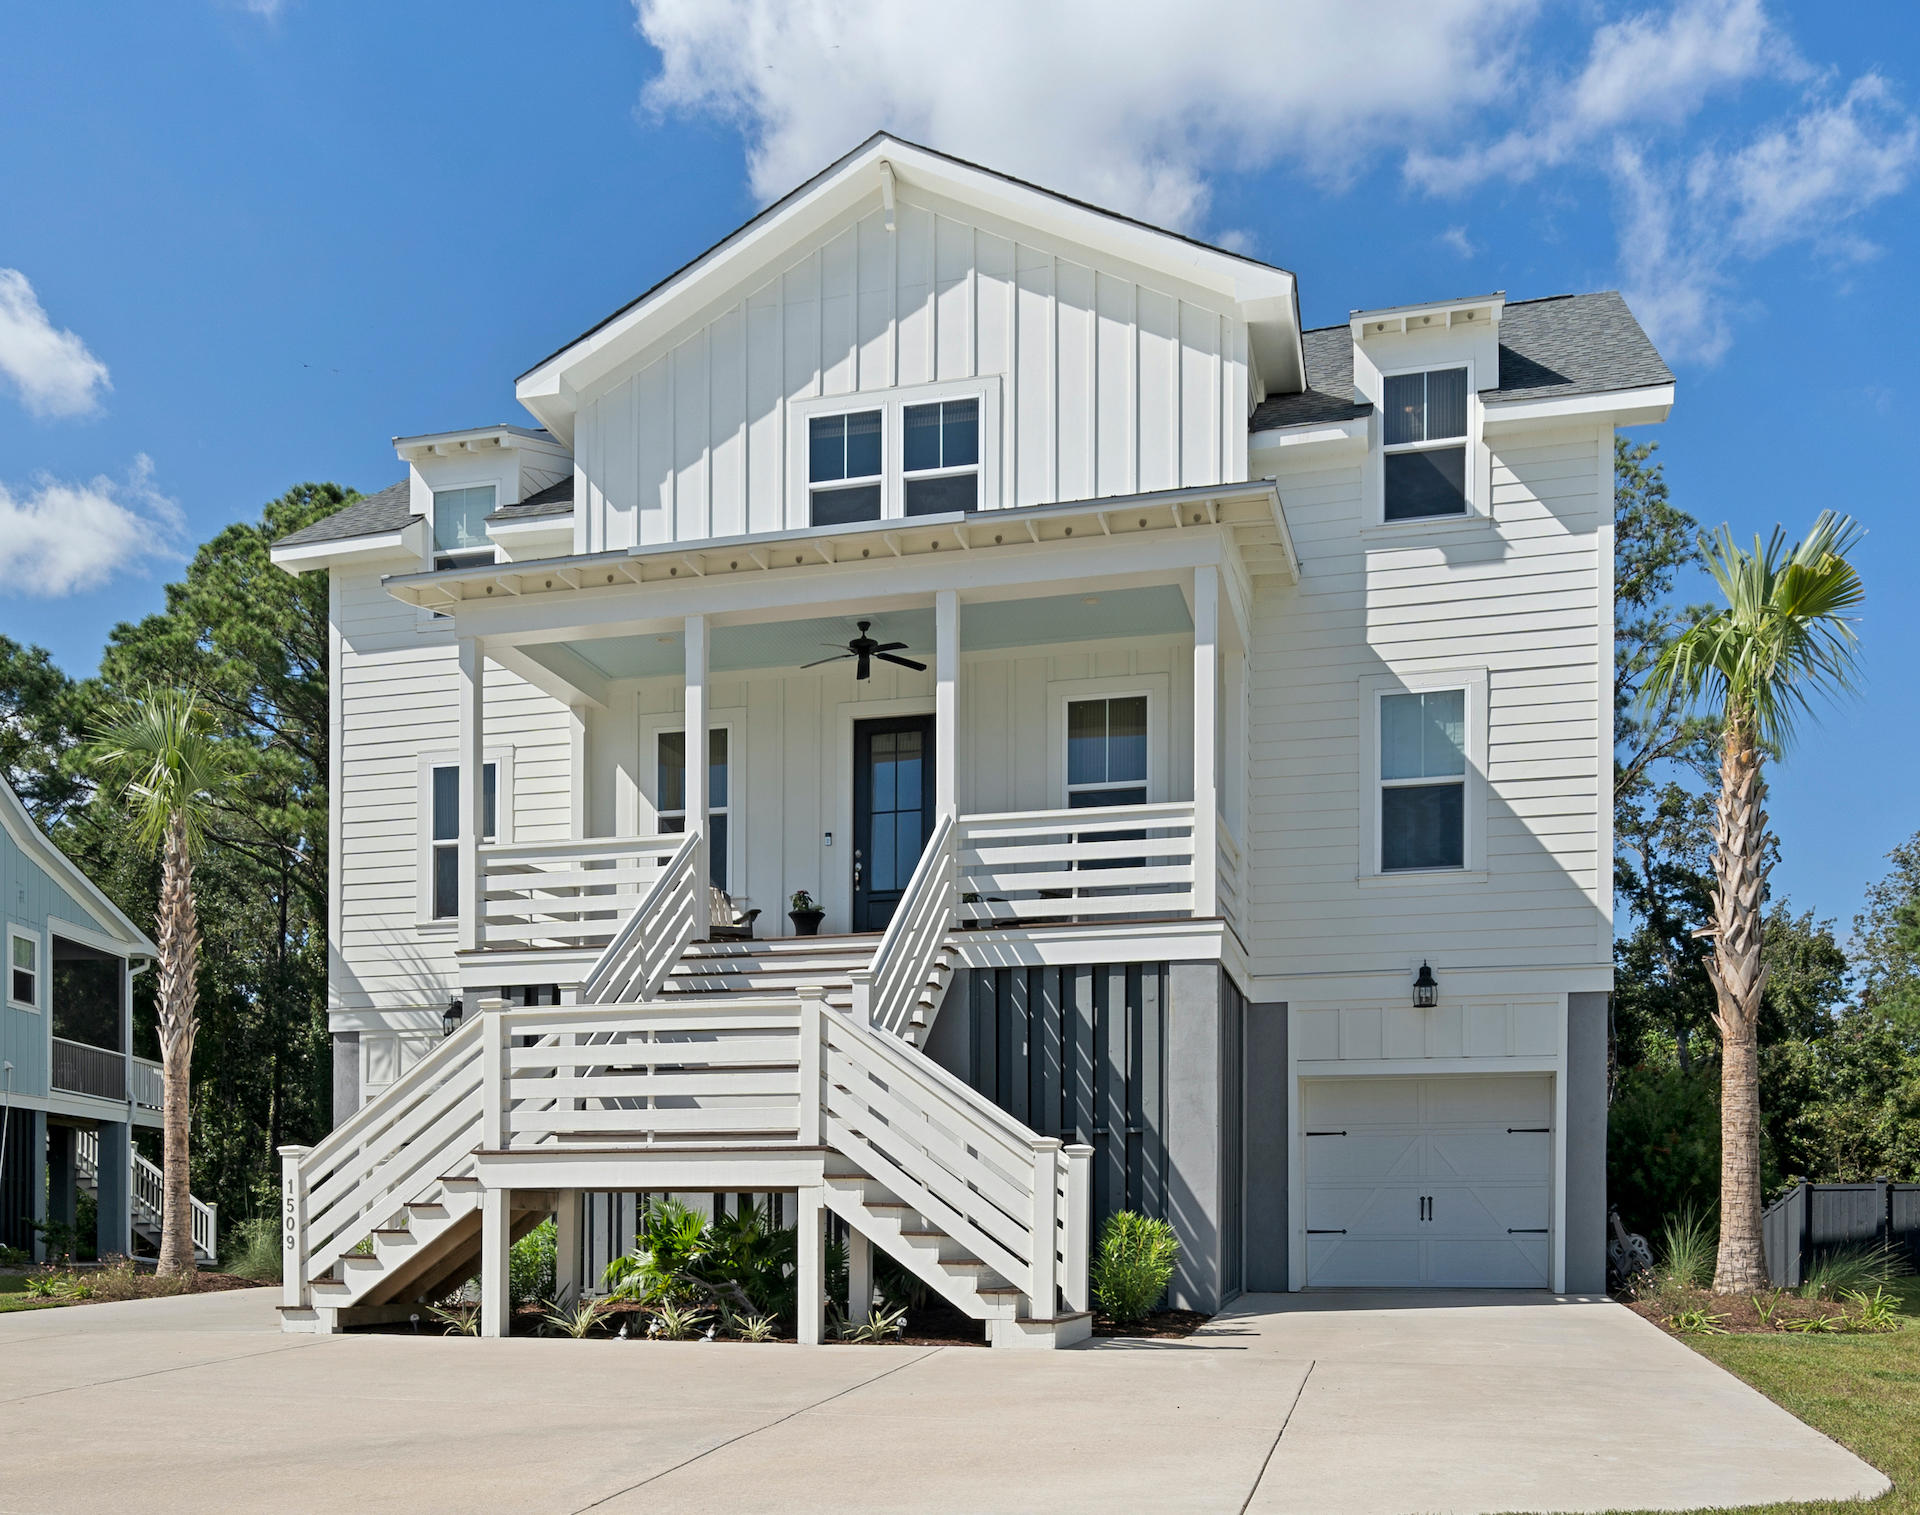 Stratton by the Sound Homes For Sale - 1509 Menhaden, Mount Pleasant, SC - 4